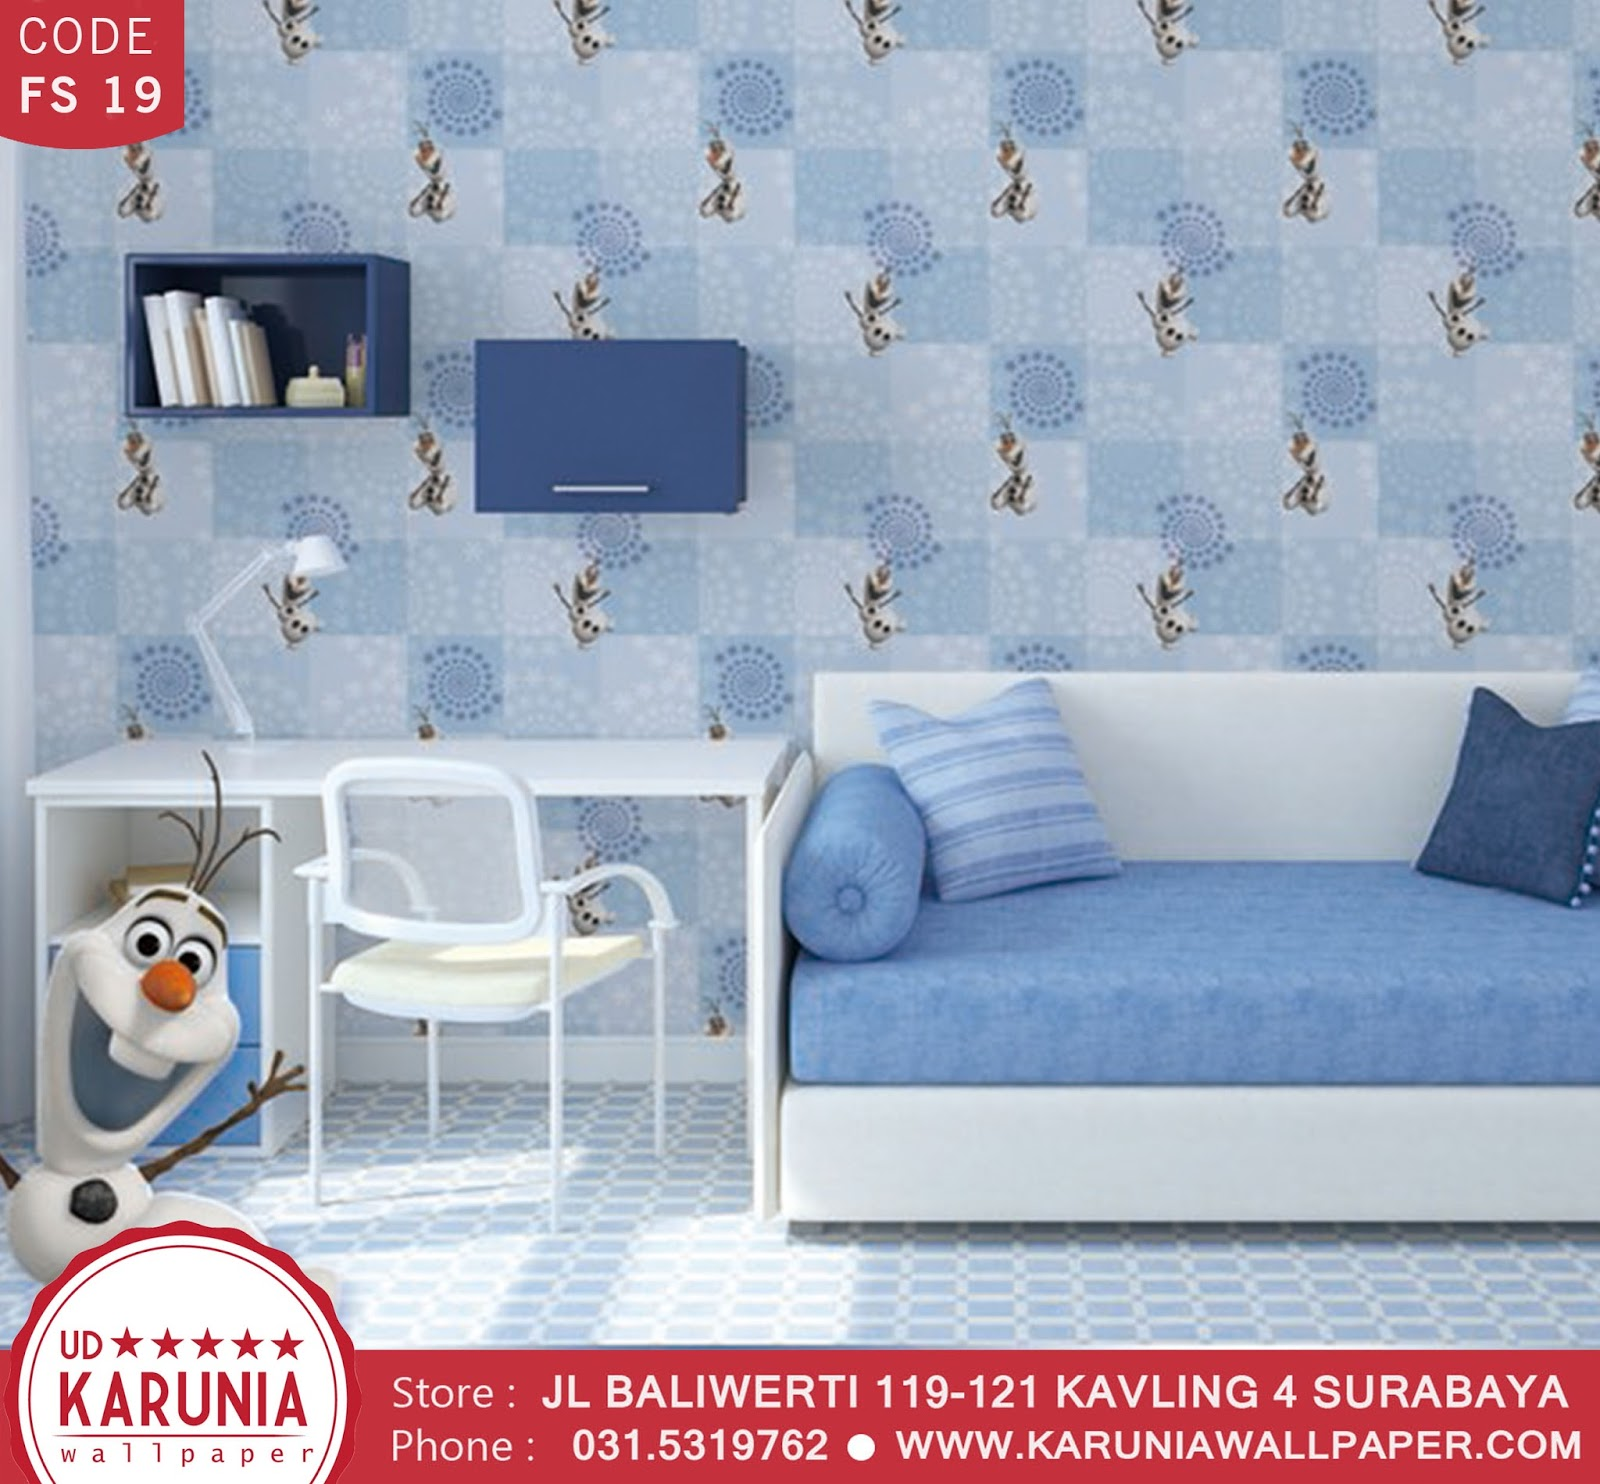 jual wallpaper frozen karuniawallpaper surabaya